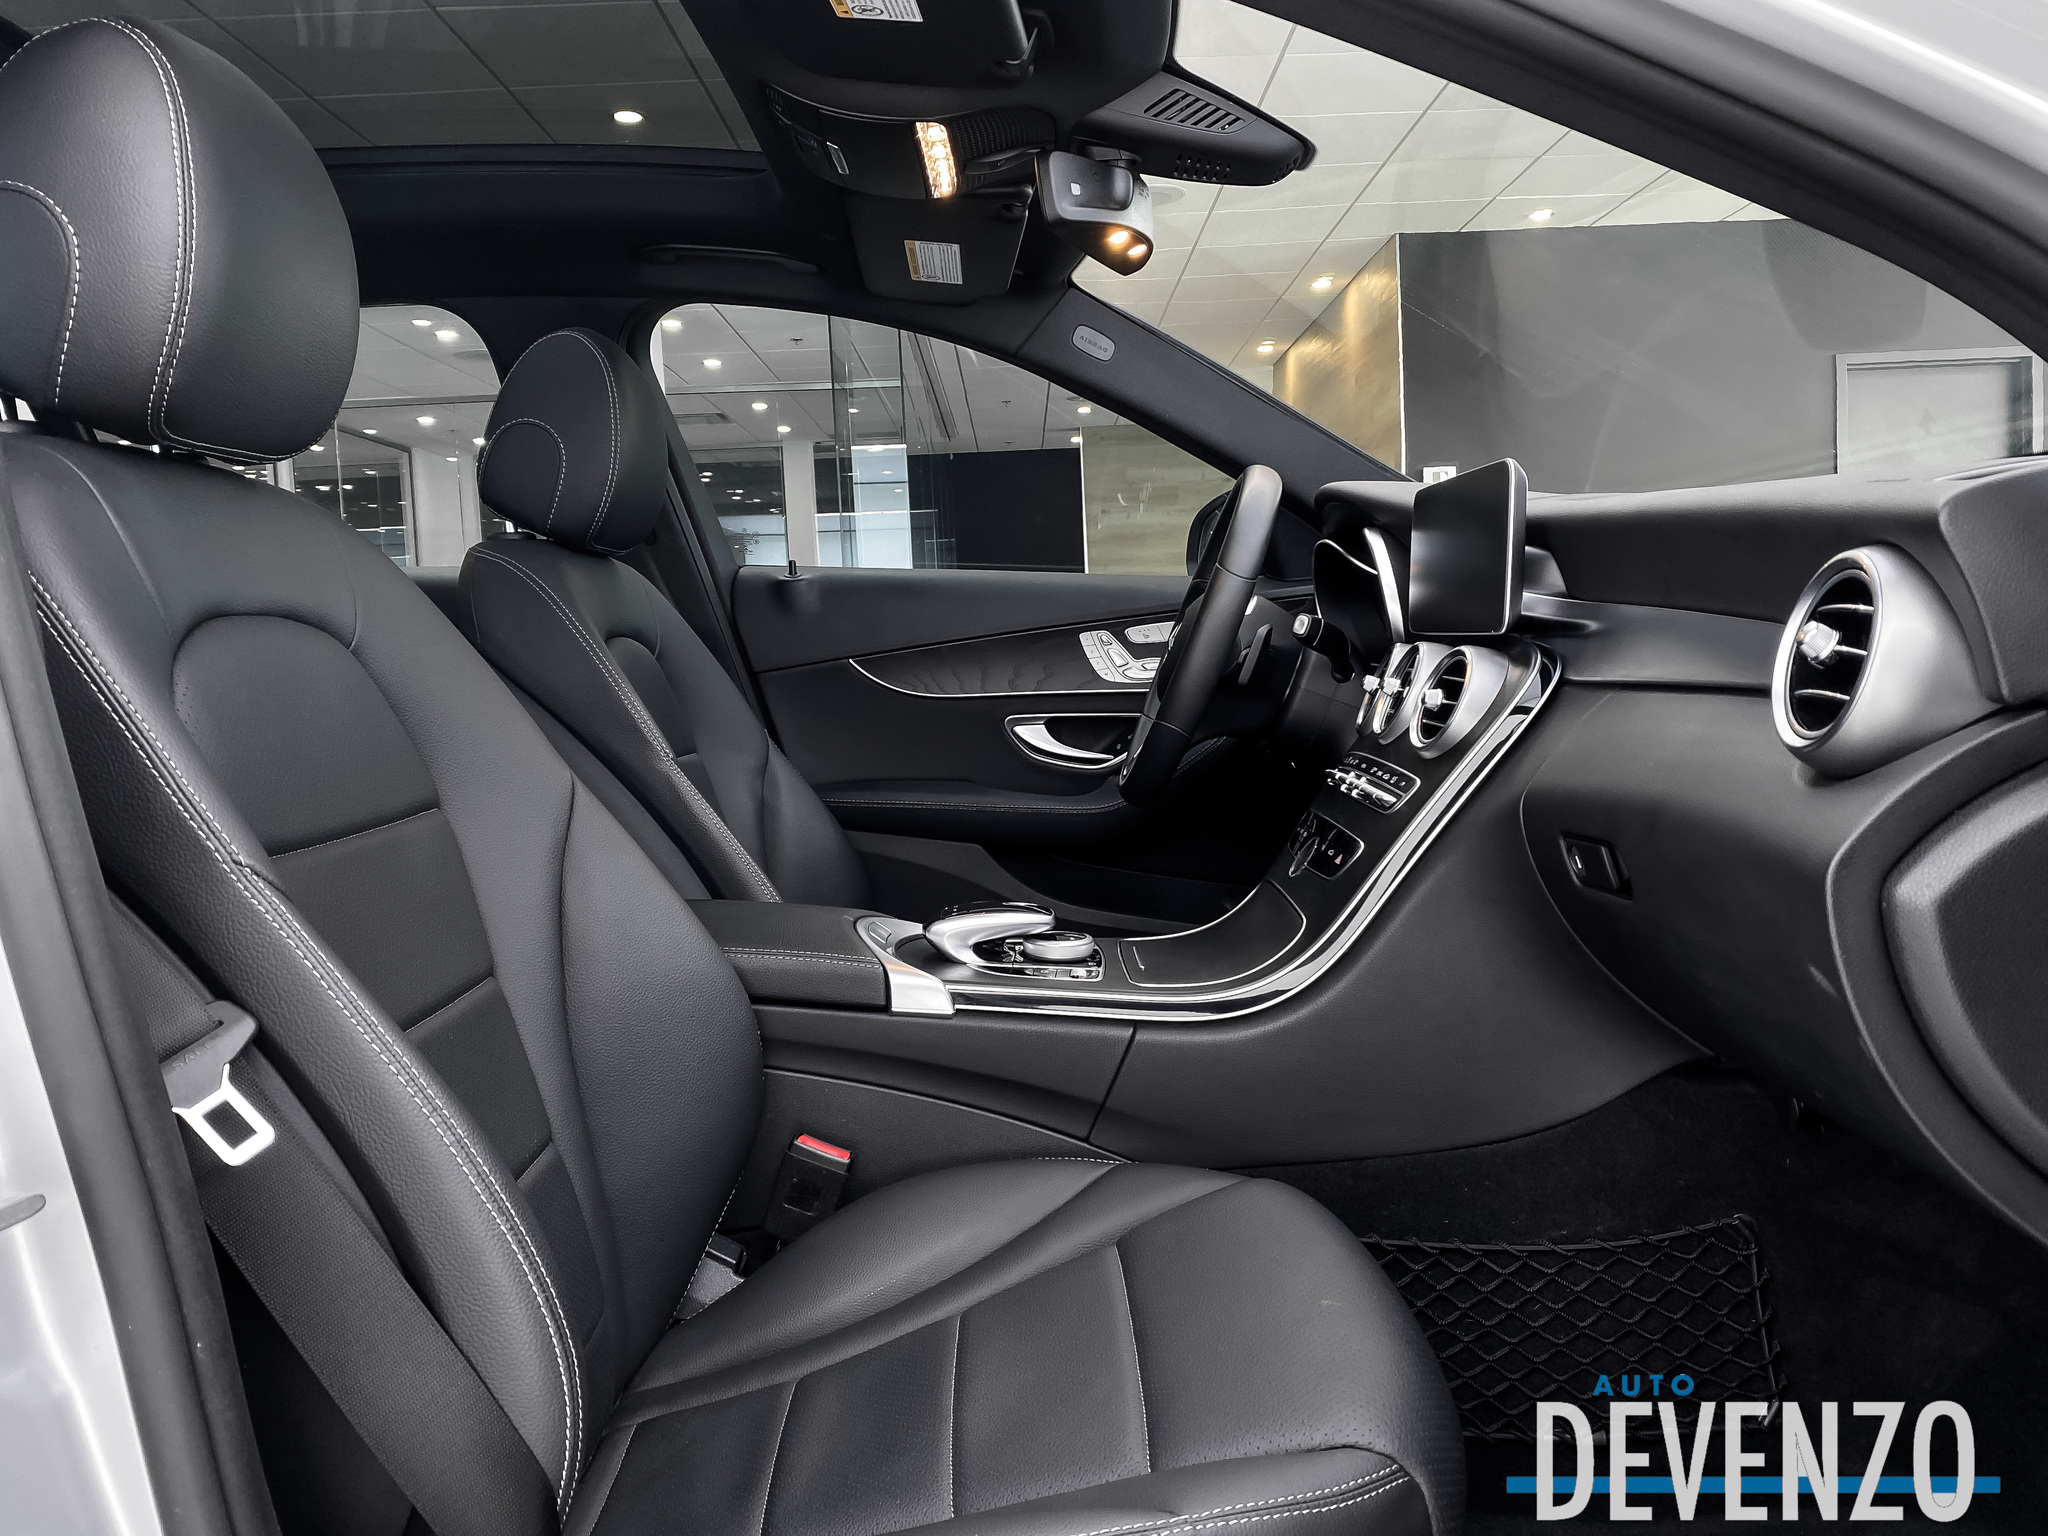 2019 Mercedes-Benz C-Class C300 4MATIC PREMIUM ONE / NIGHT PACKAGE complet